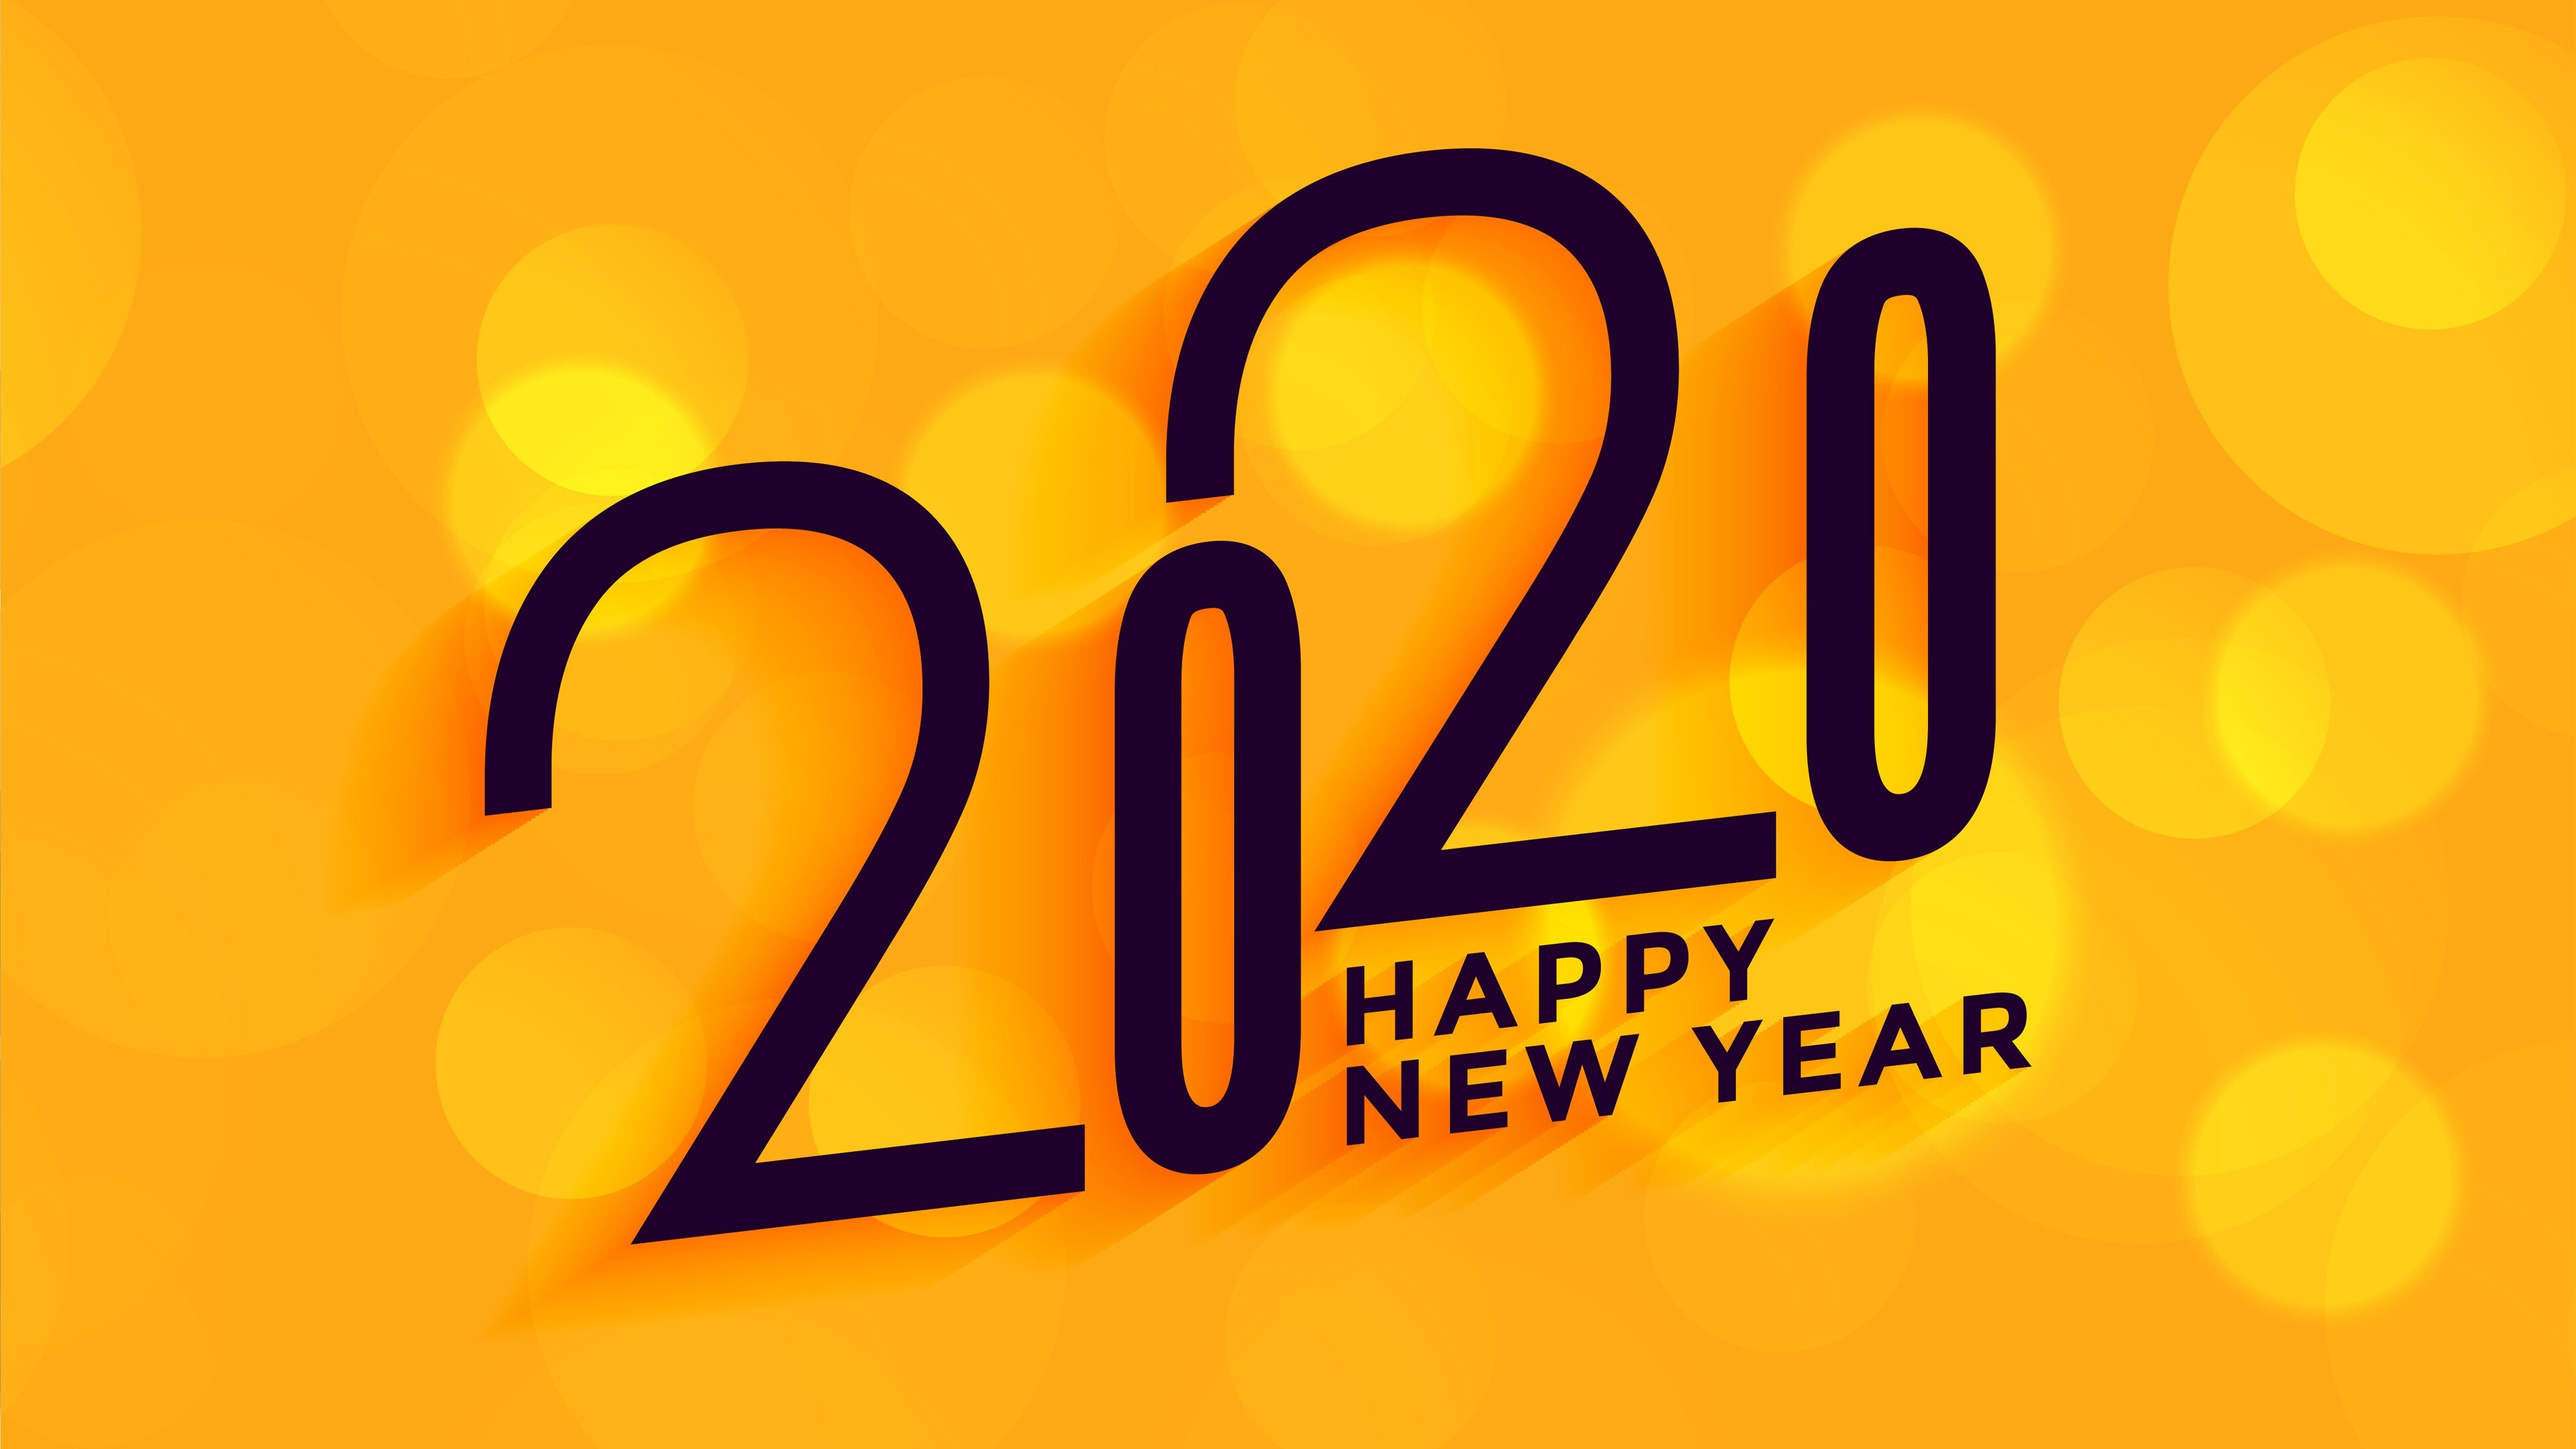 2020 Happy New Year Yellow 4k Wallpaper Hd Wallpapers